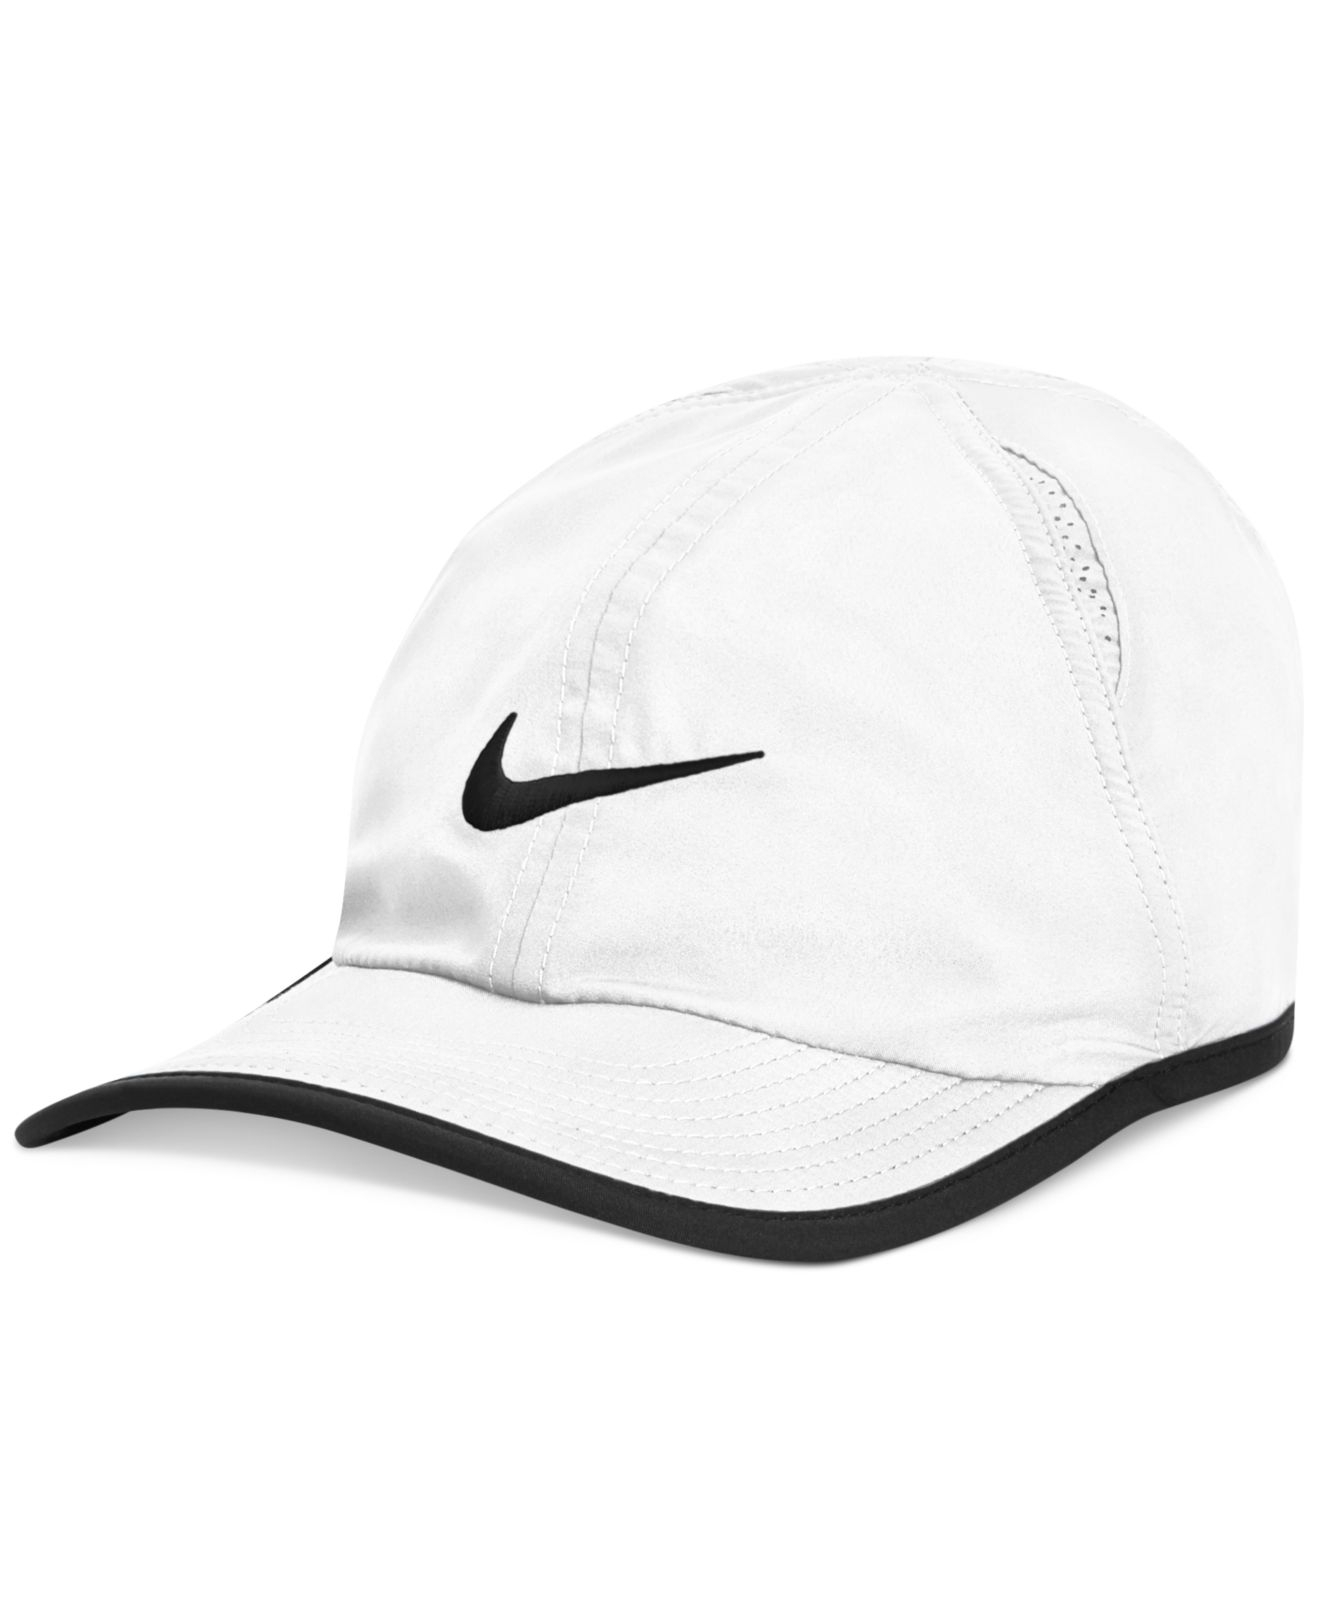 8d87164938f Lyst - Nike Dri-Fit Featherlight Performance Hat 2.0 in White for Men